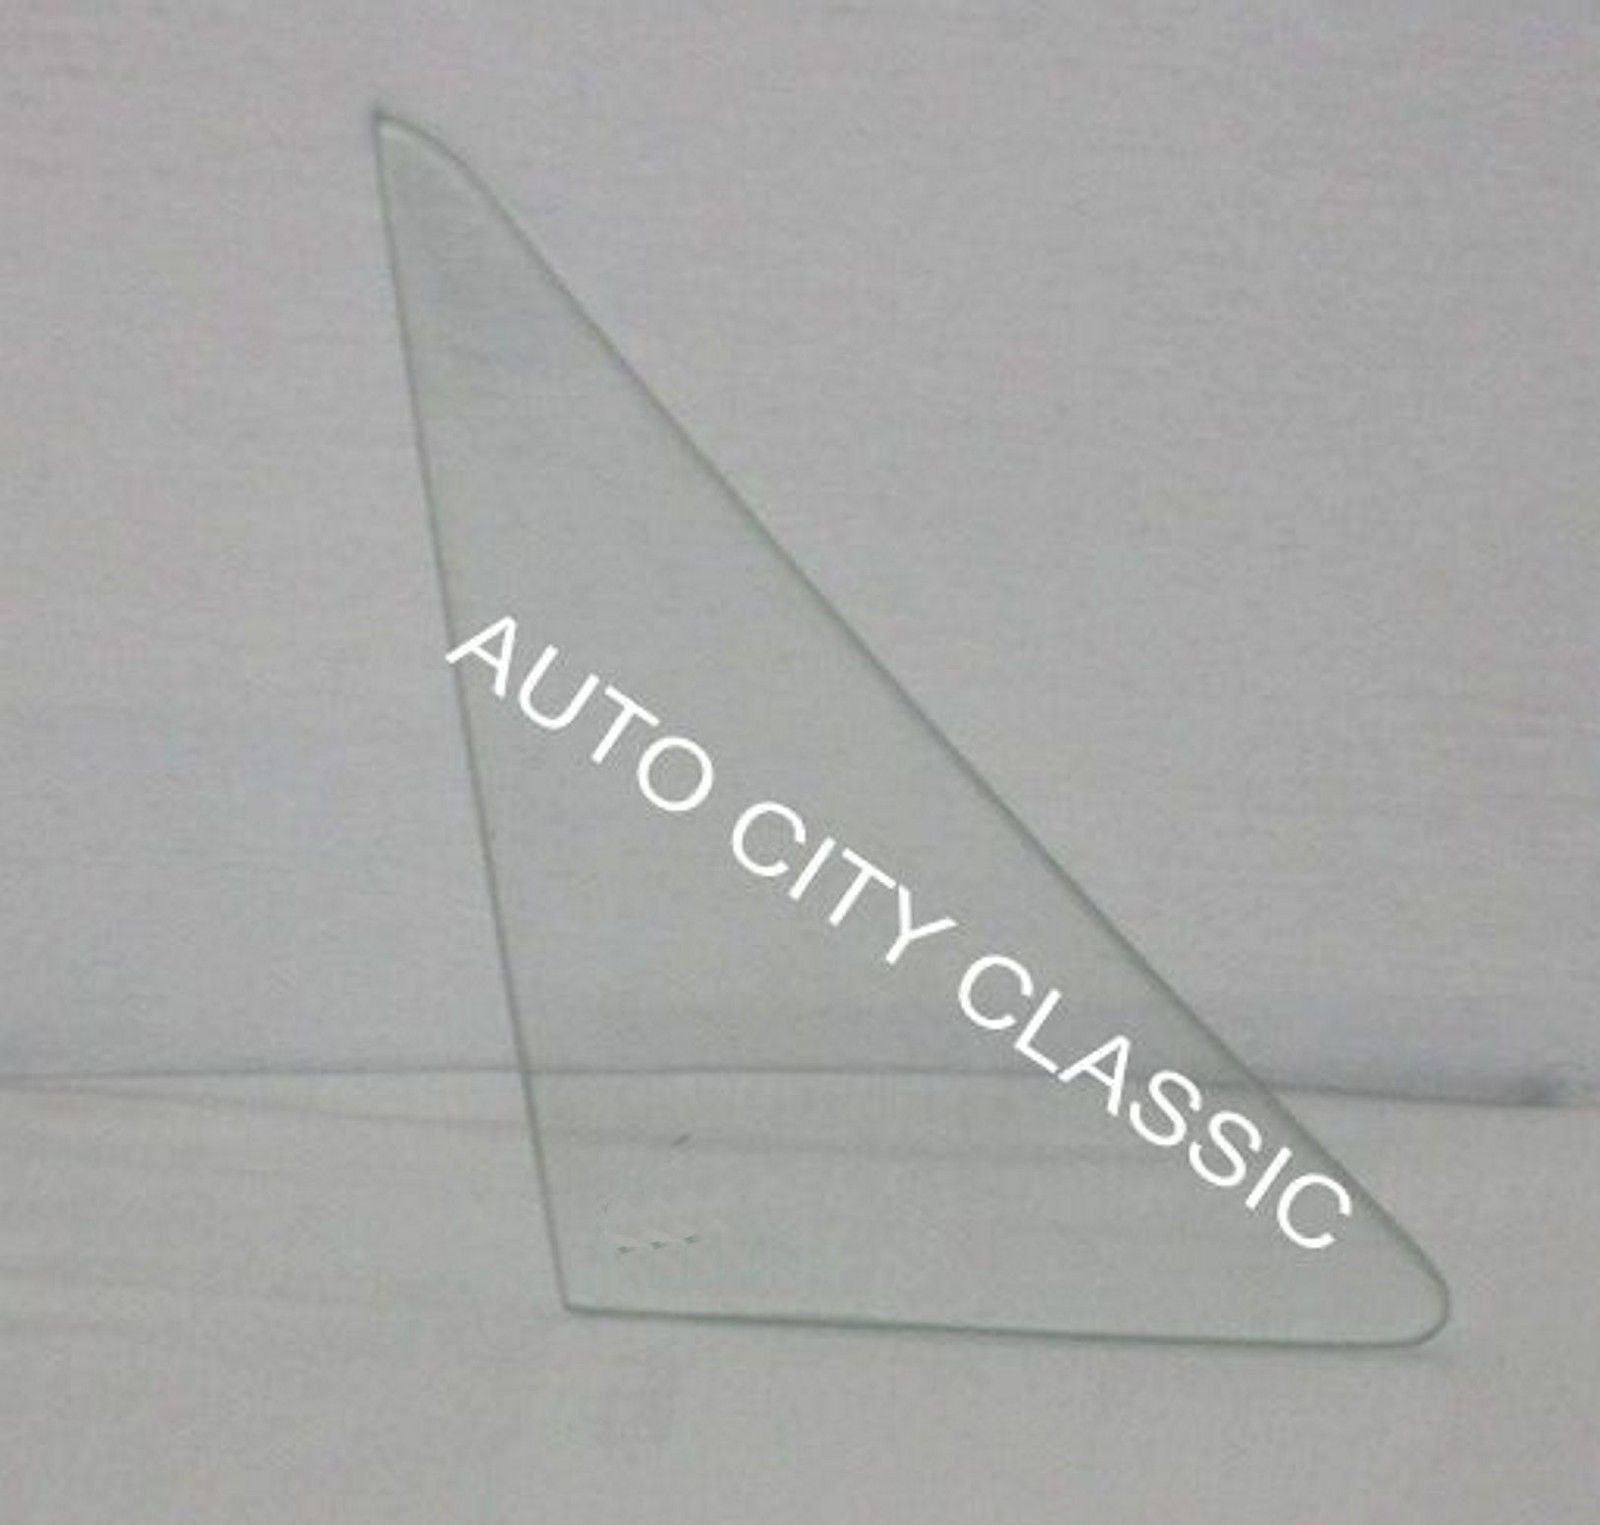 52 Buick Cadillac Oldsmobile Vent Glass